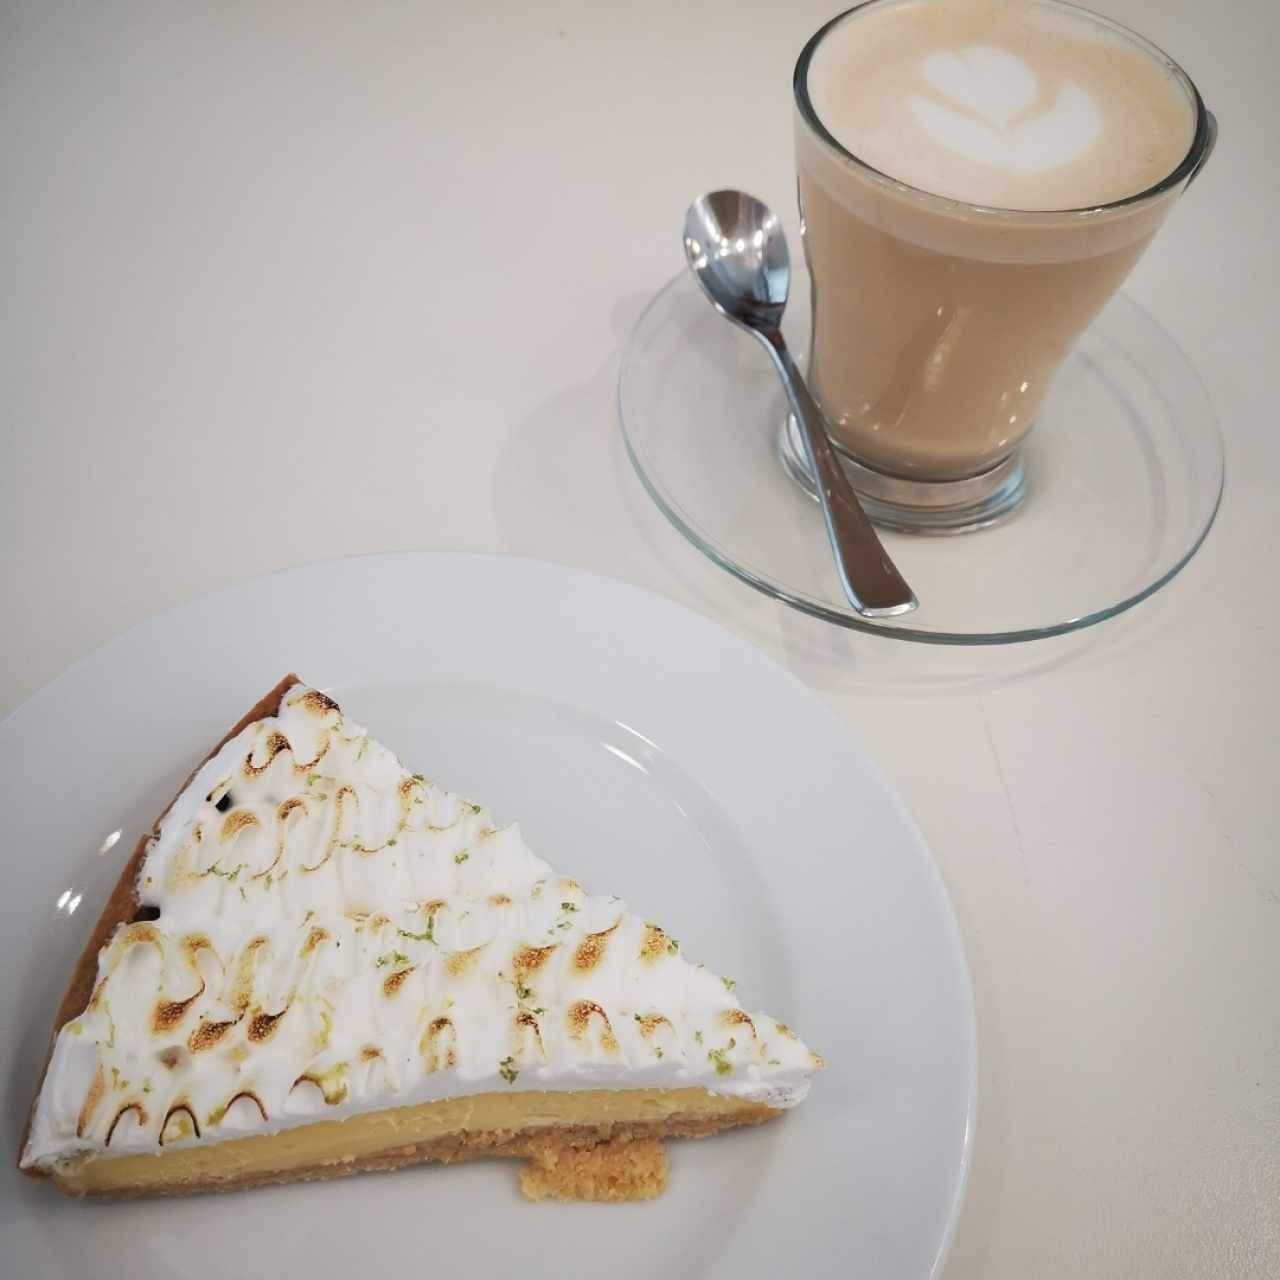 Pie de Limon y Capuchino